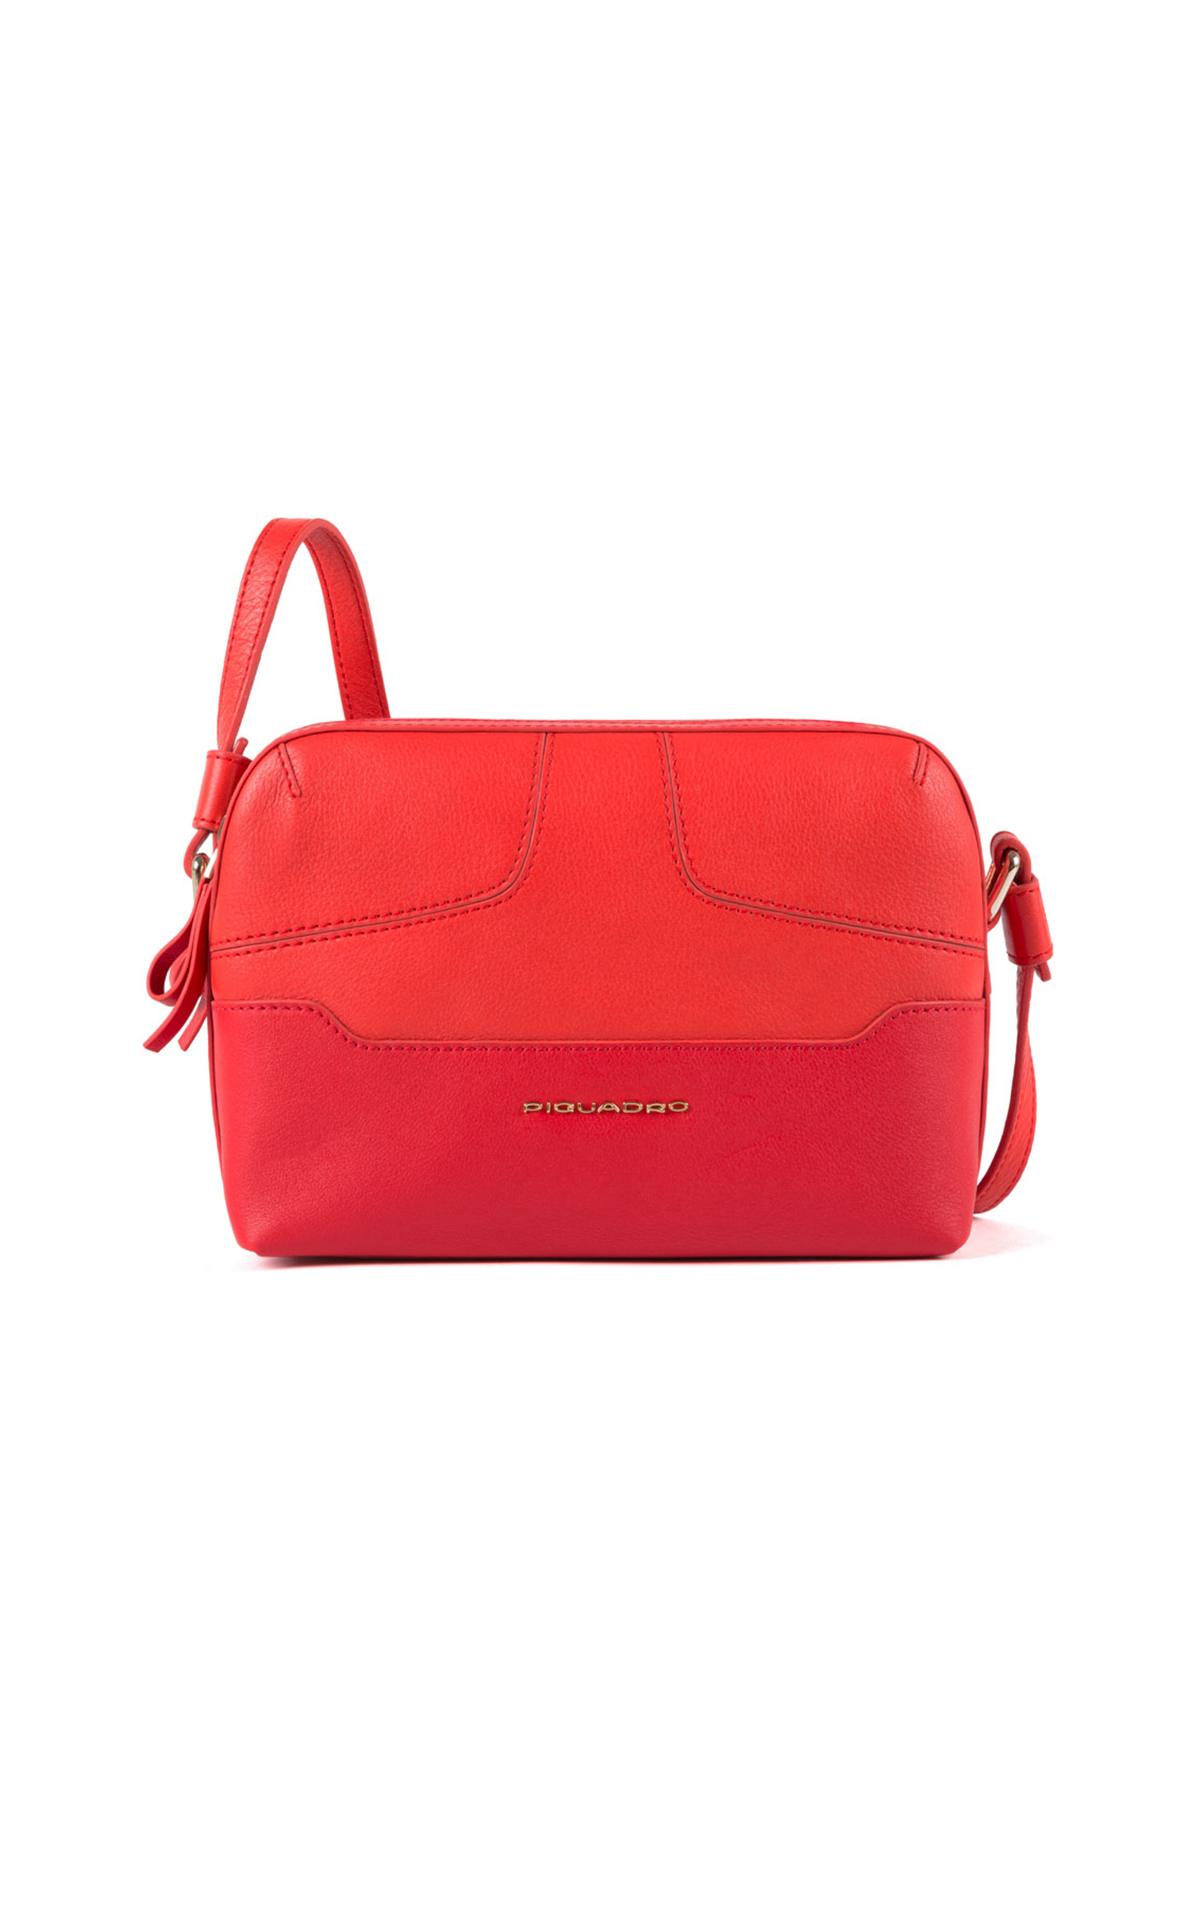 Red leather bag Piquadro